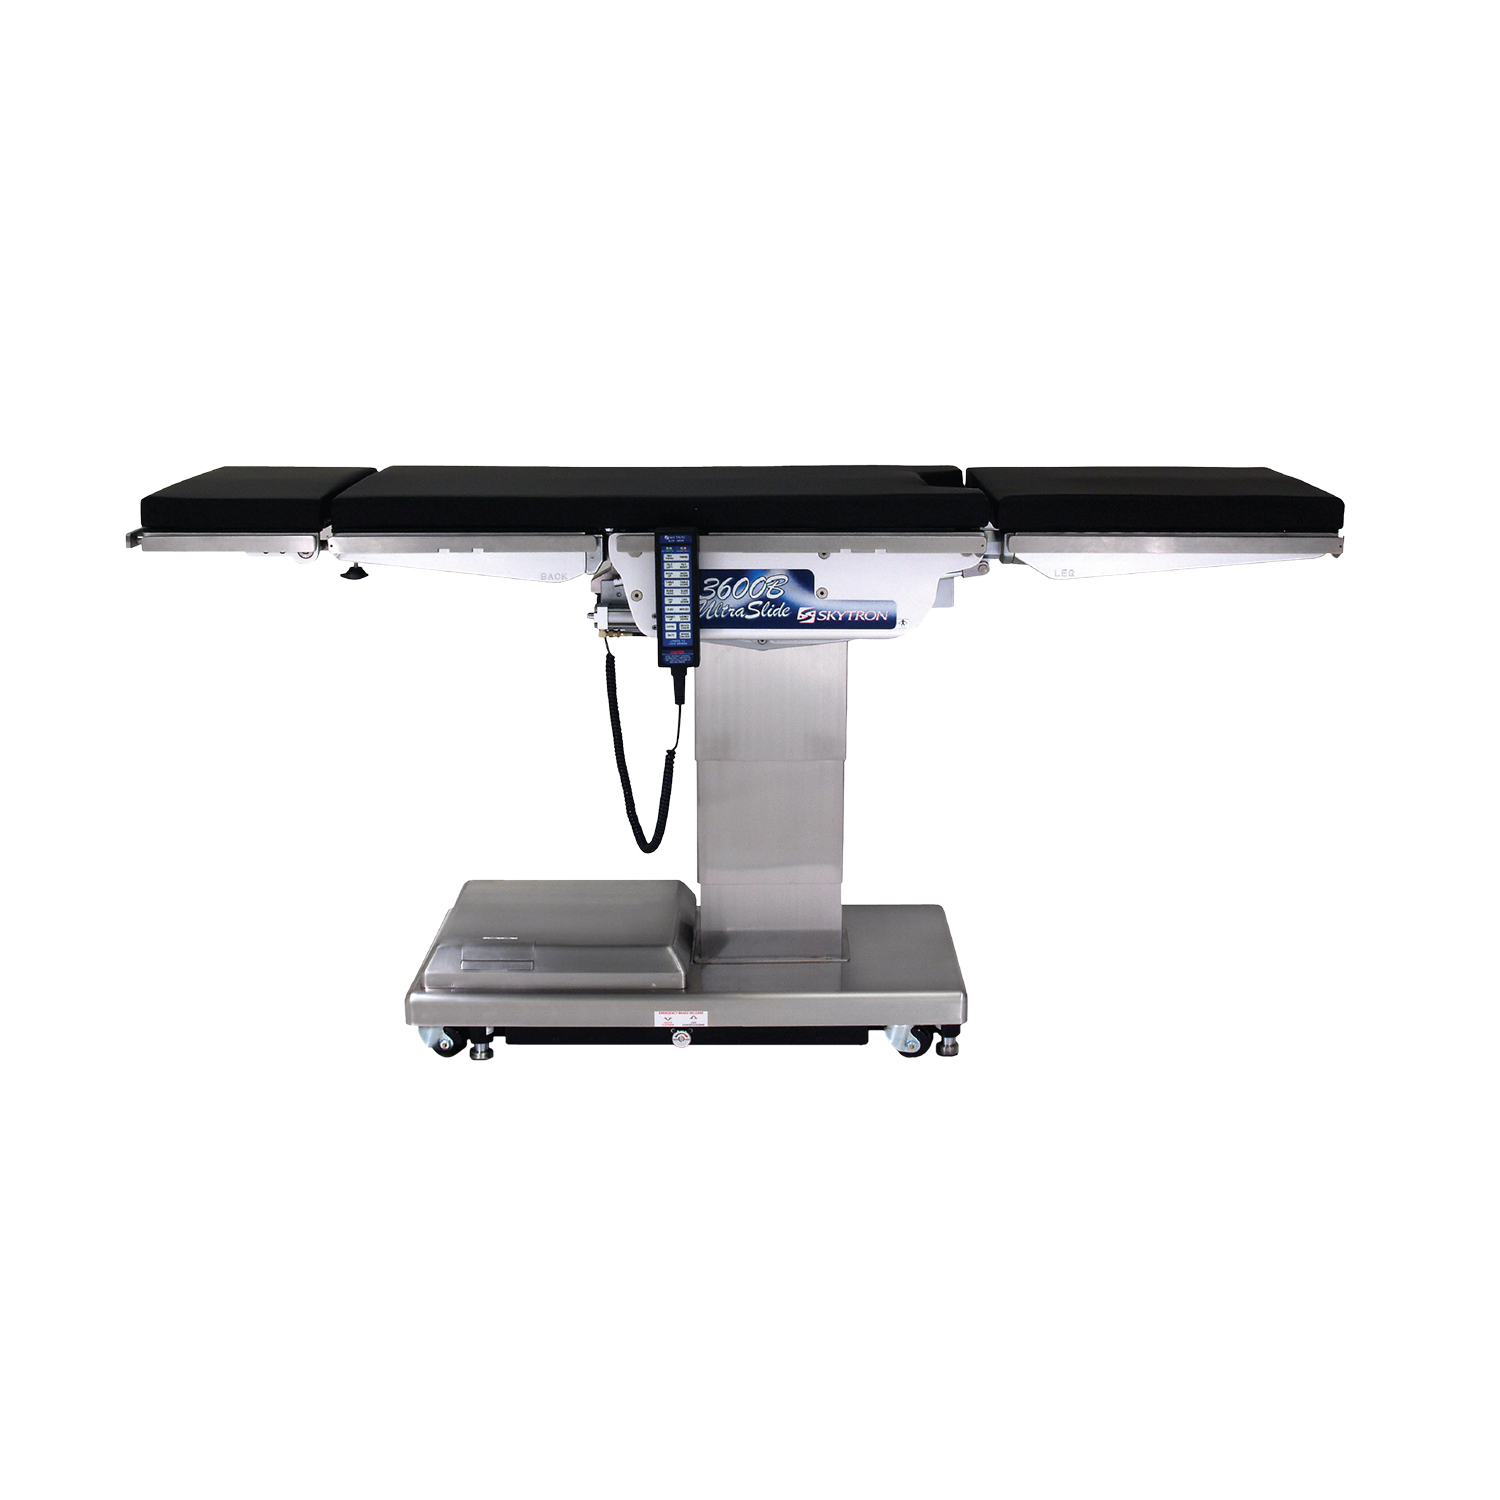 Skytron UltraSlide 3600B Surgical Table